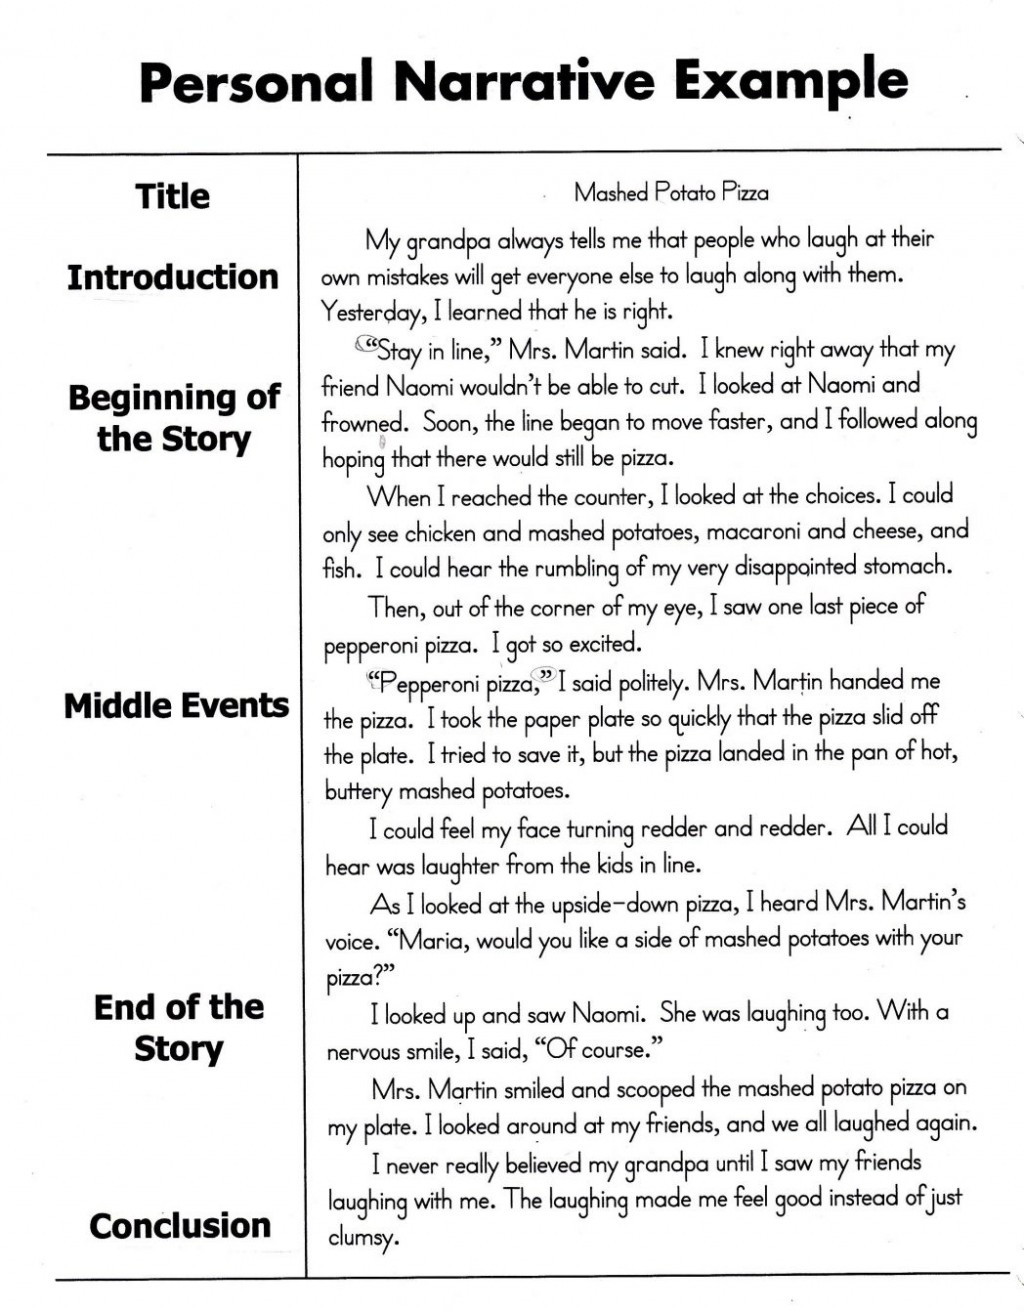 011 Who Am I Essays Samples Topics For Research Paper Good Thesis Introduction 1048x1343 Amazing Essay Examples Students College How To Write A 'who I' Large